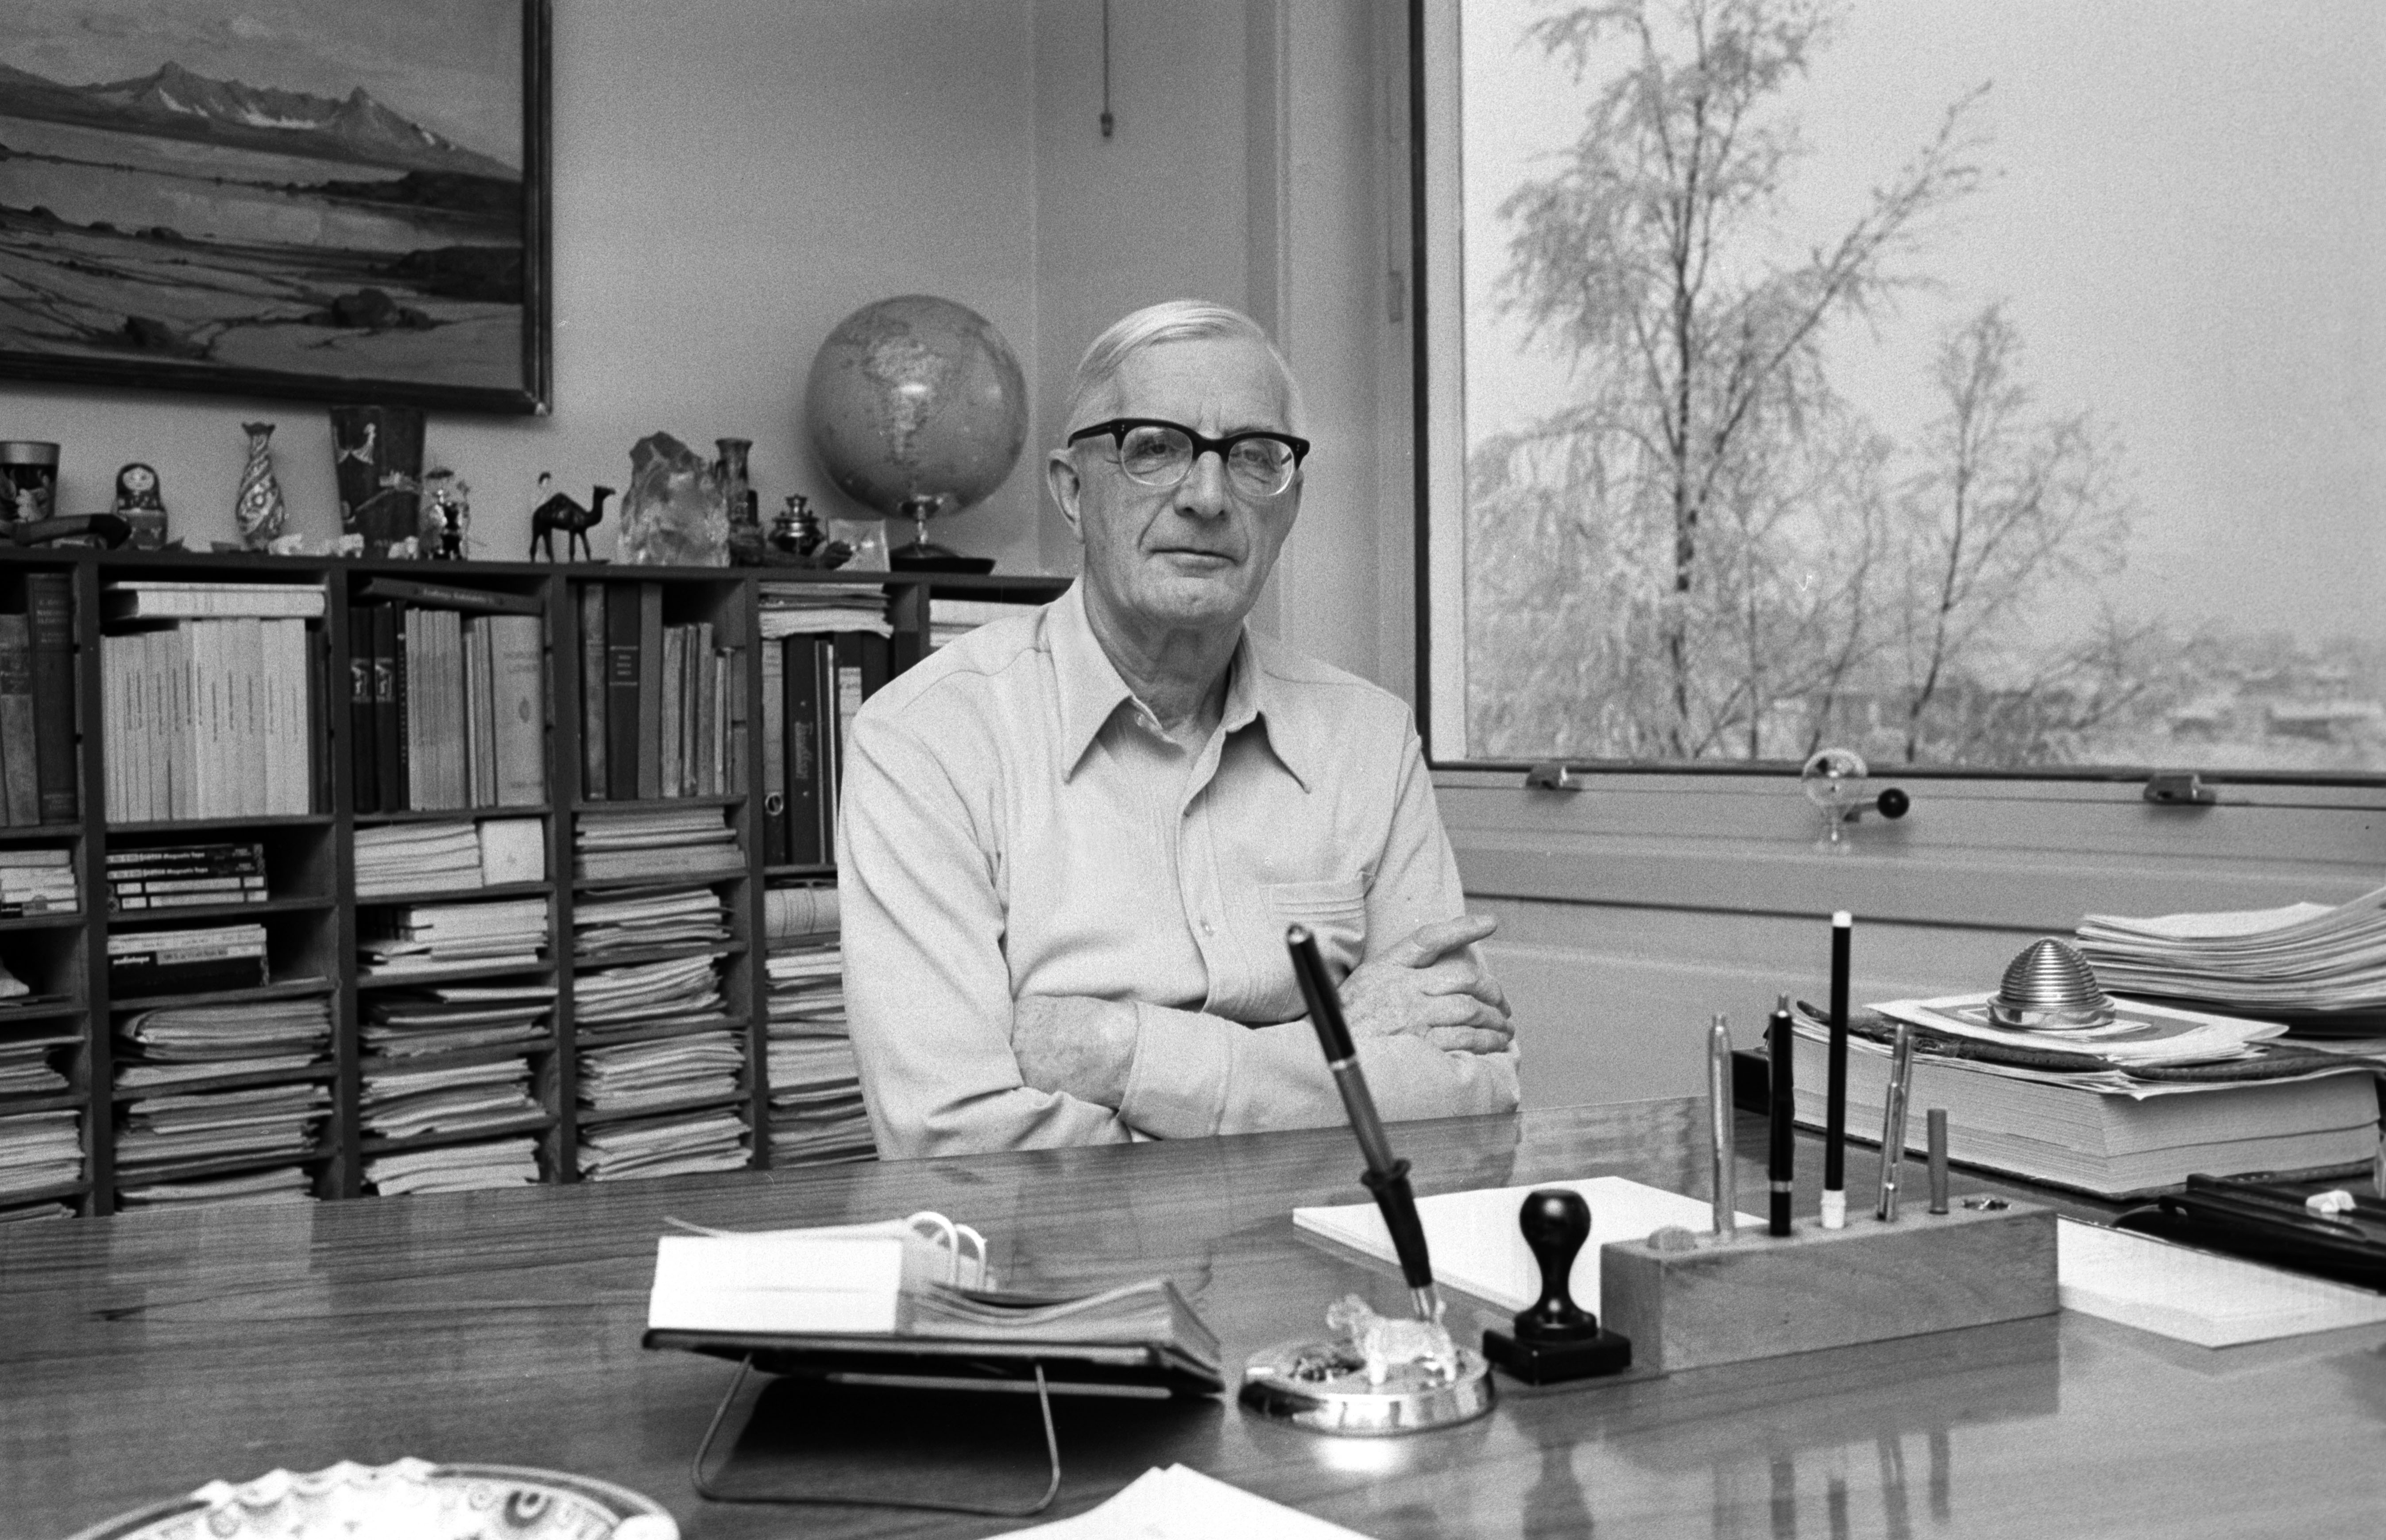 (Vebjørn Tandberg in his office, 1973. Photo: Storløkken/Aktuell/Scanpix)